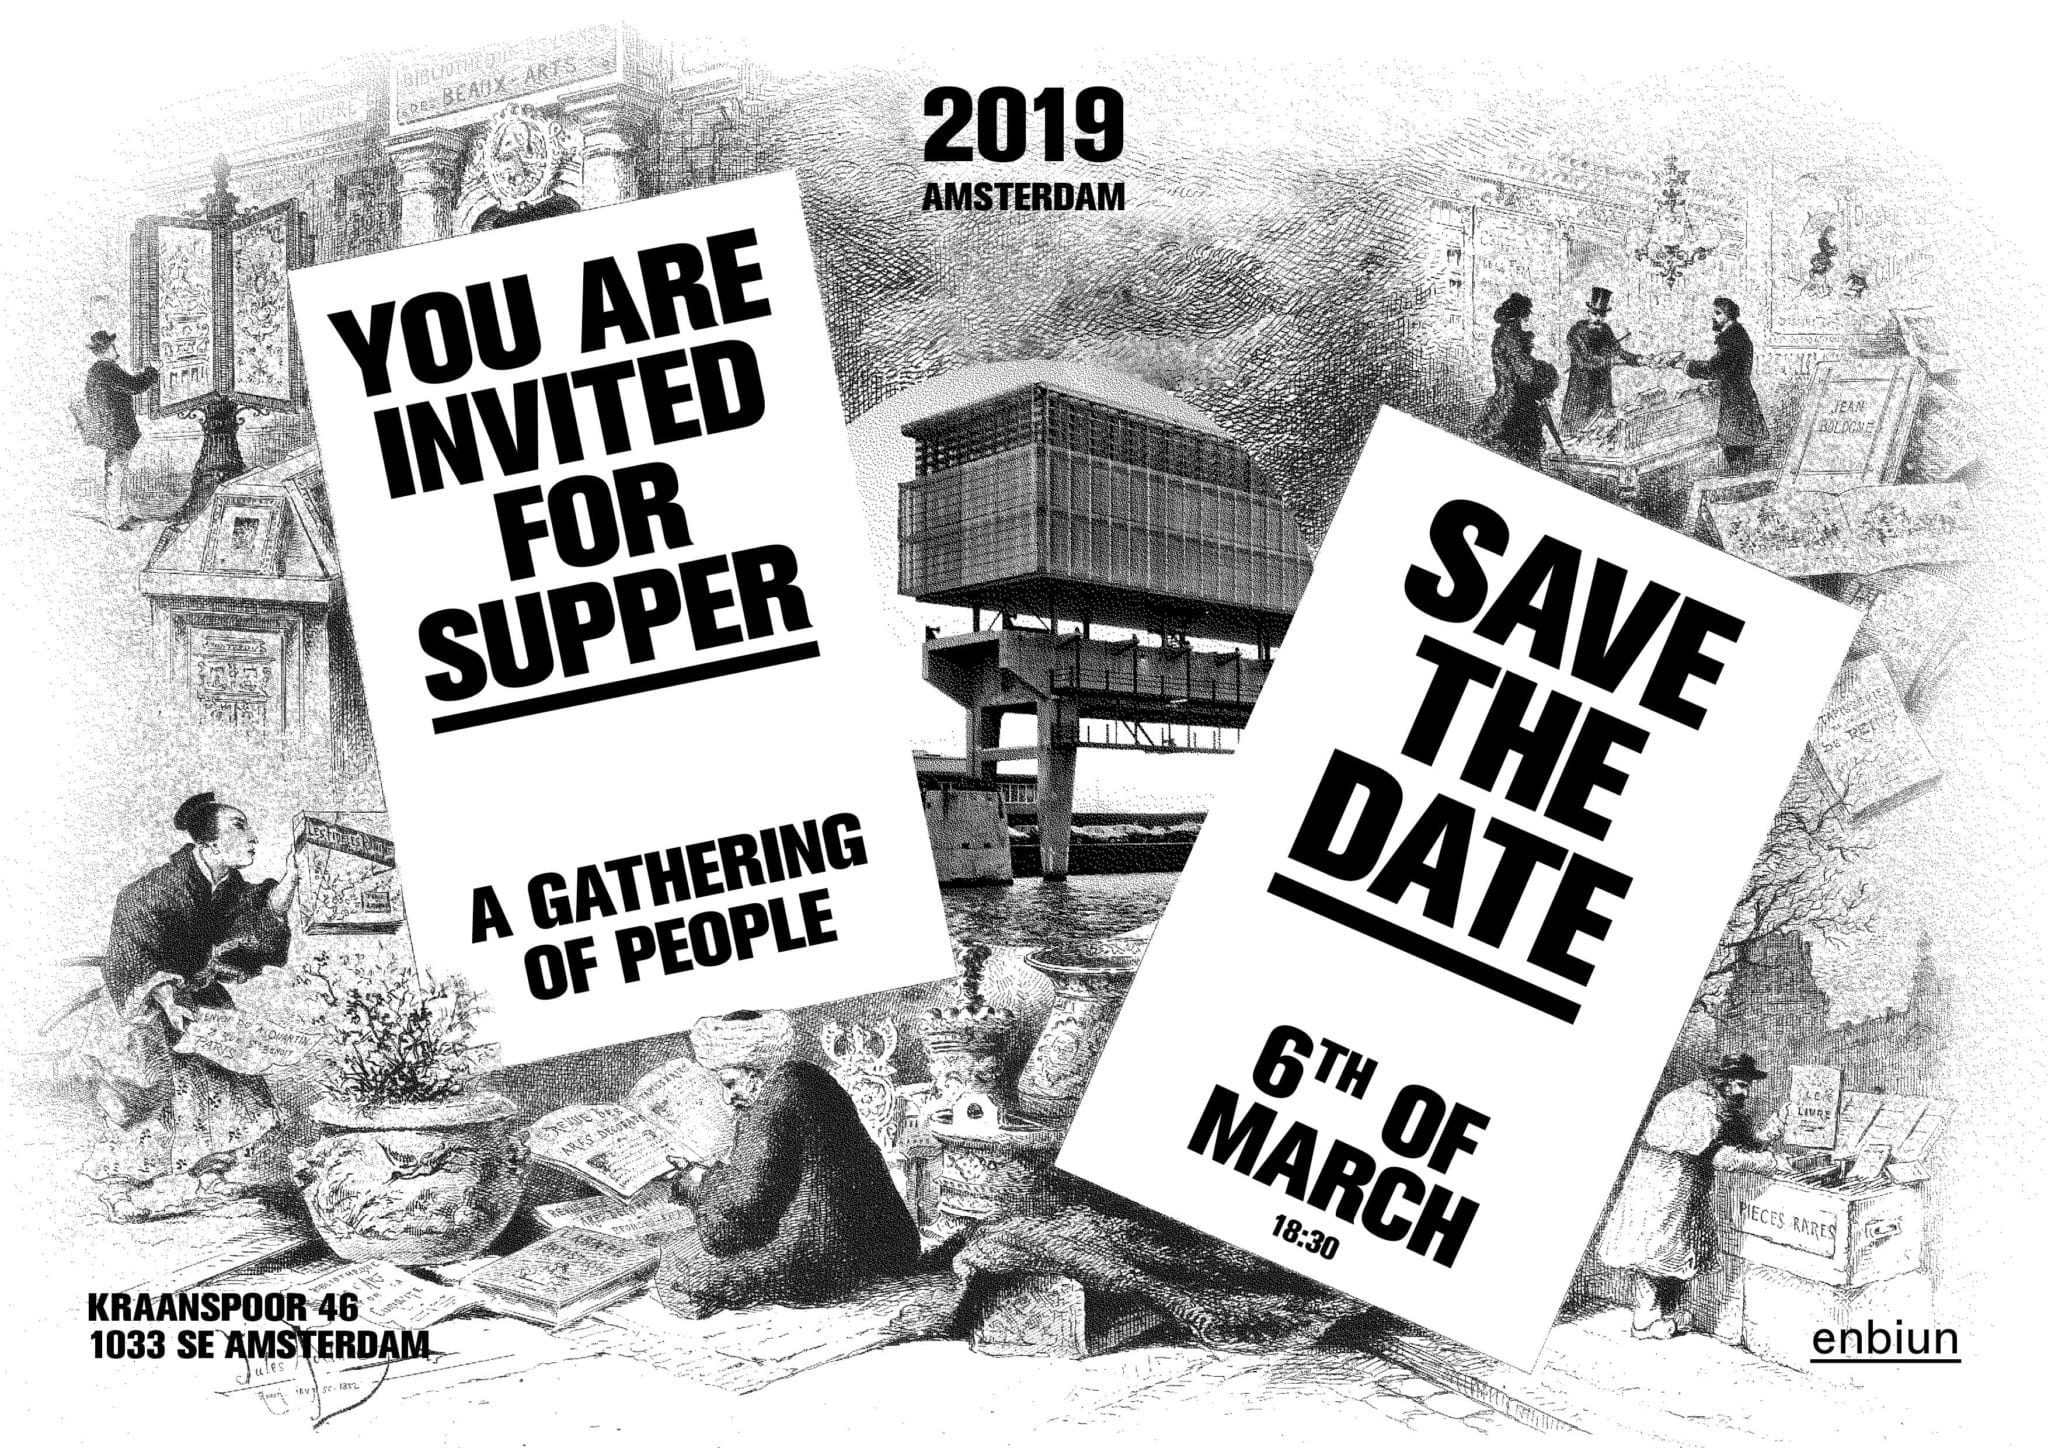 The Enbiun supper invitation for 2019